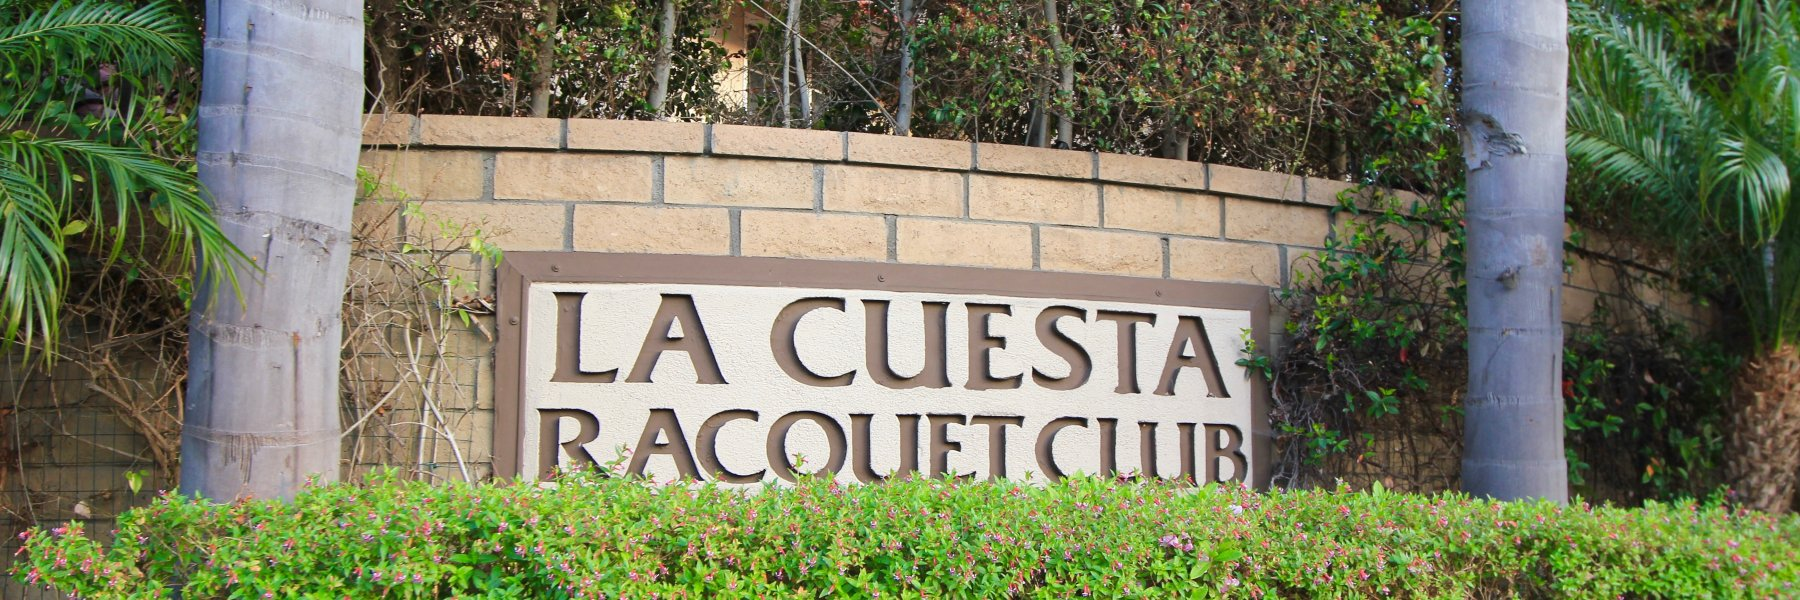 La Cuesta Racquet Club is a community of homes in Huntington Beach California